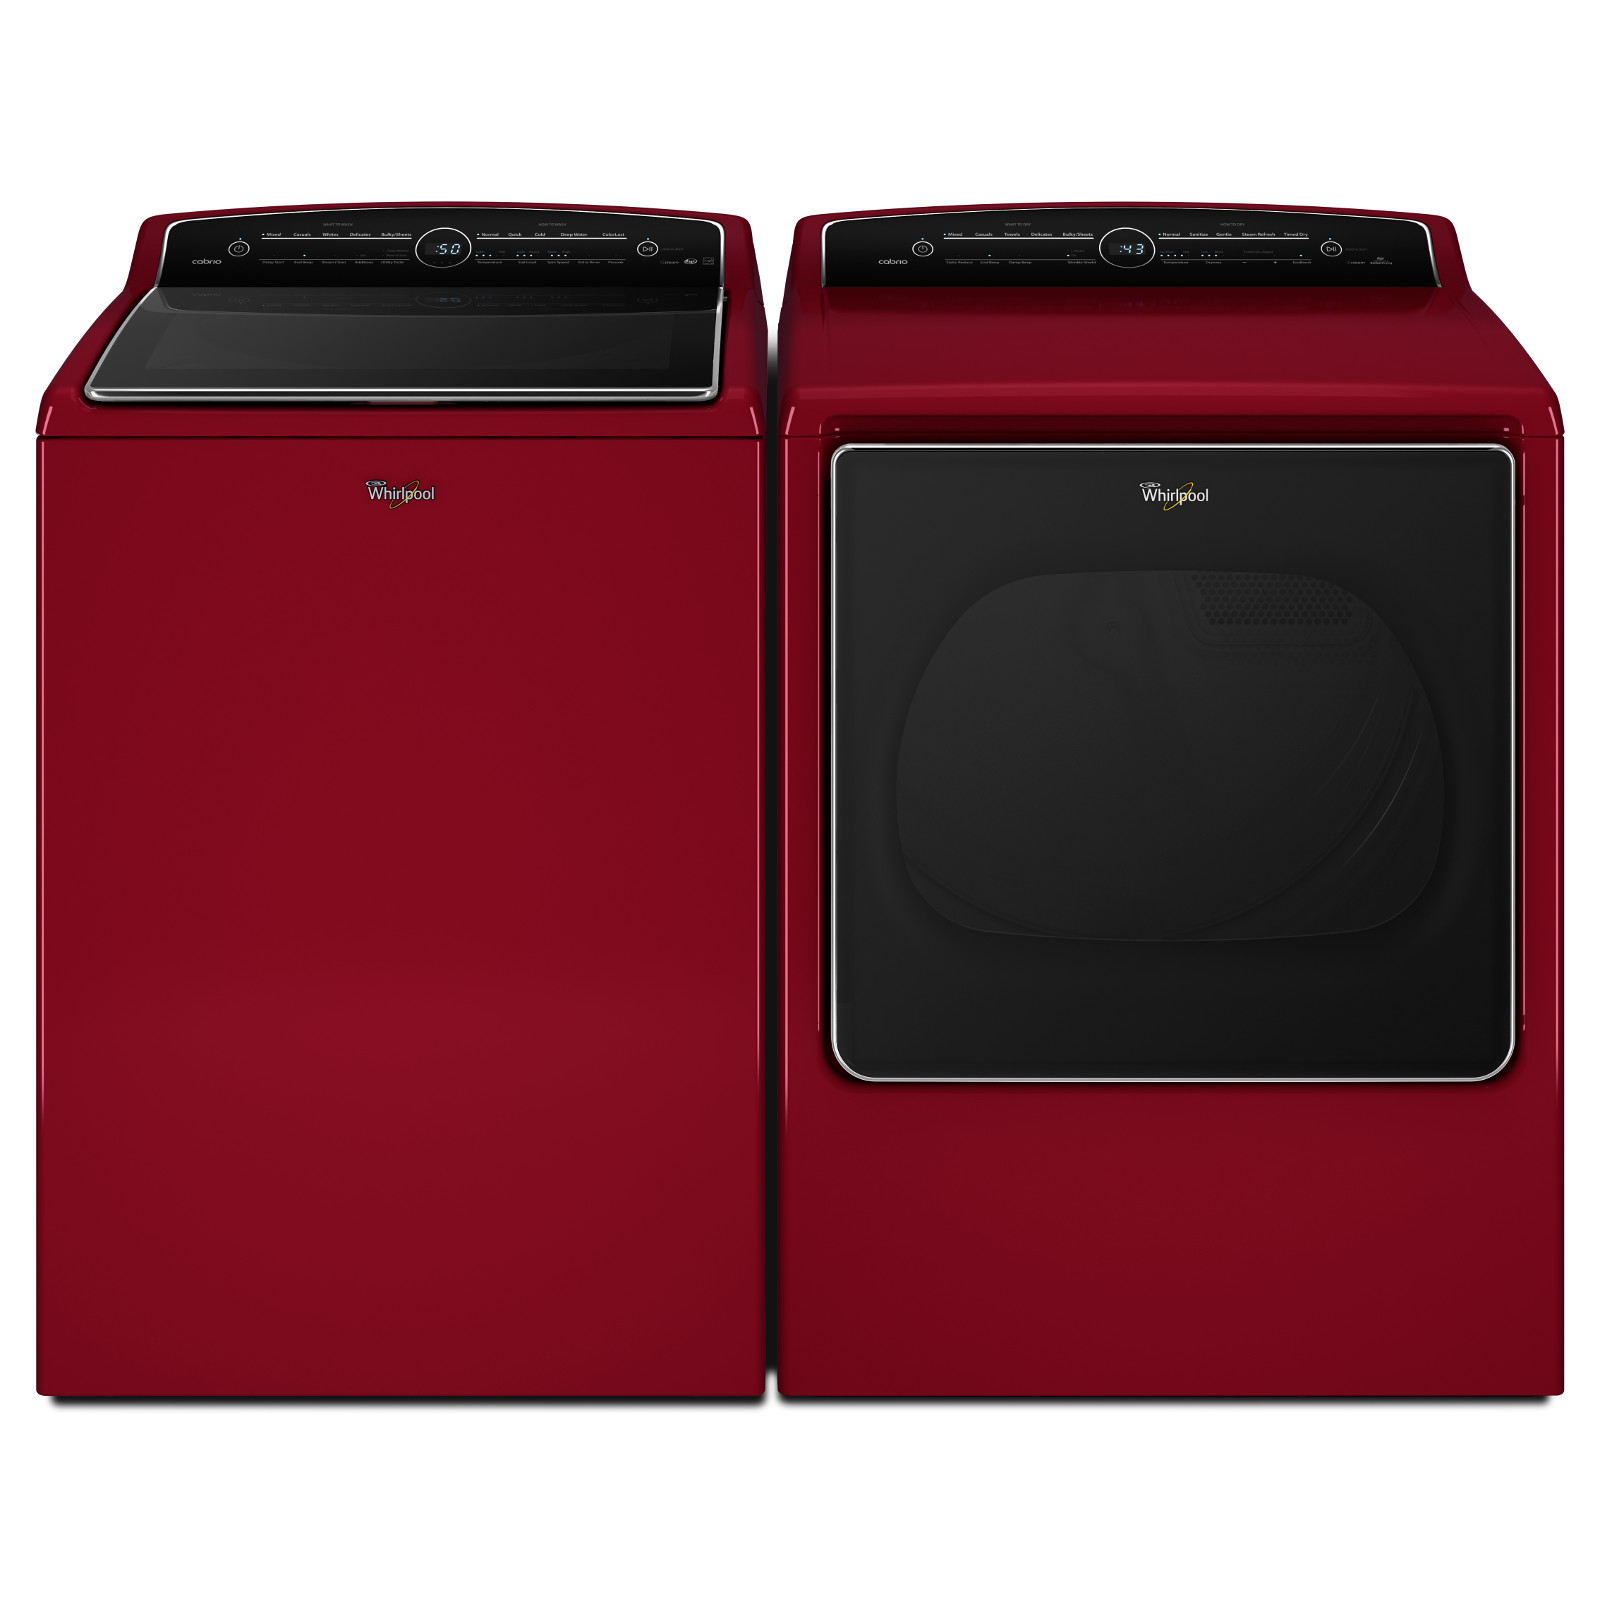 Whirlpool WTW8500DR 5.3 cu. ft. Cabrio® Top Load Washer - Cranberry Red